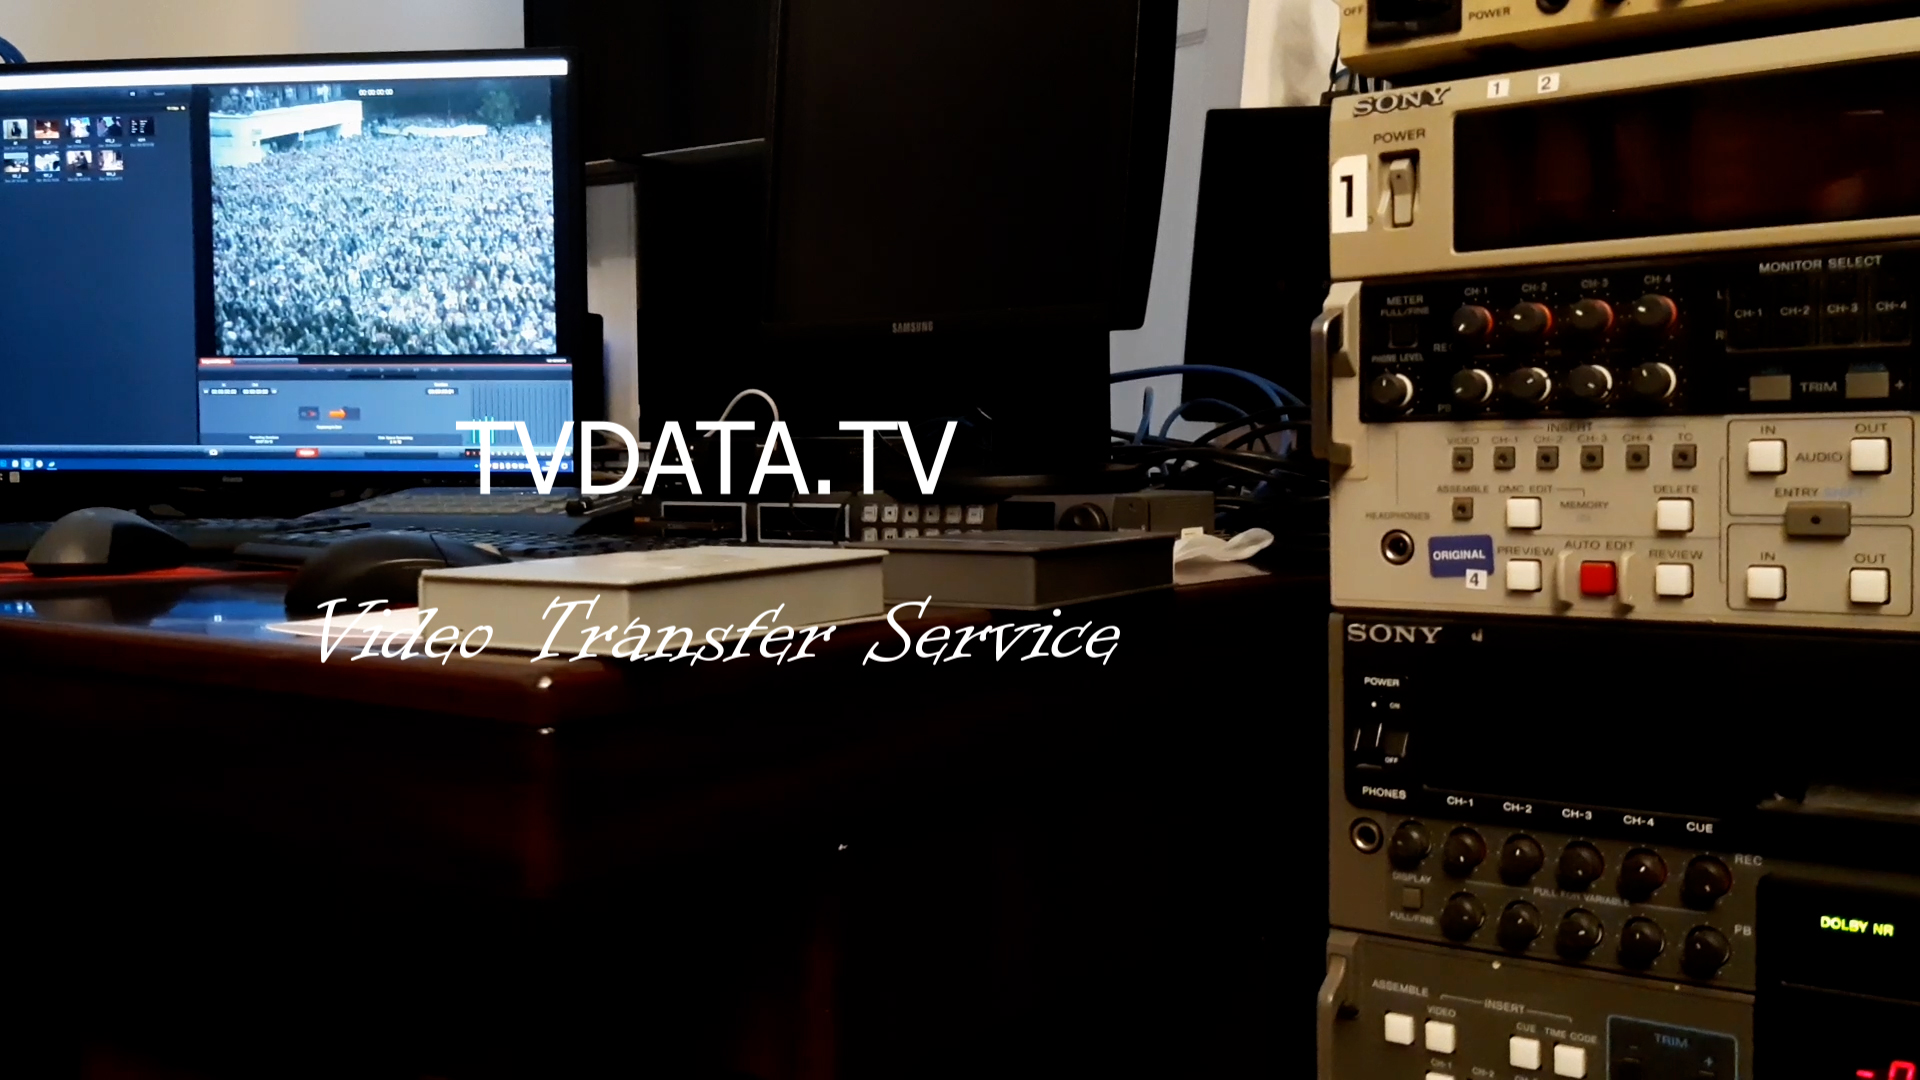 transferring video tapes to digital formats. SD/HD Standards Conversion